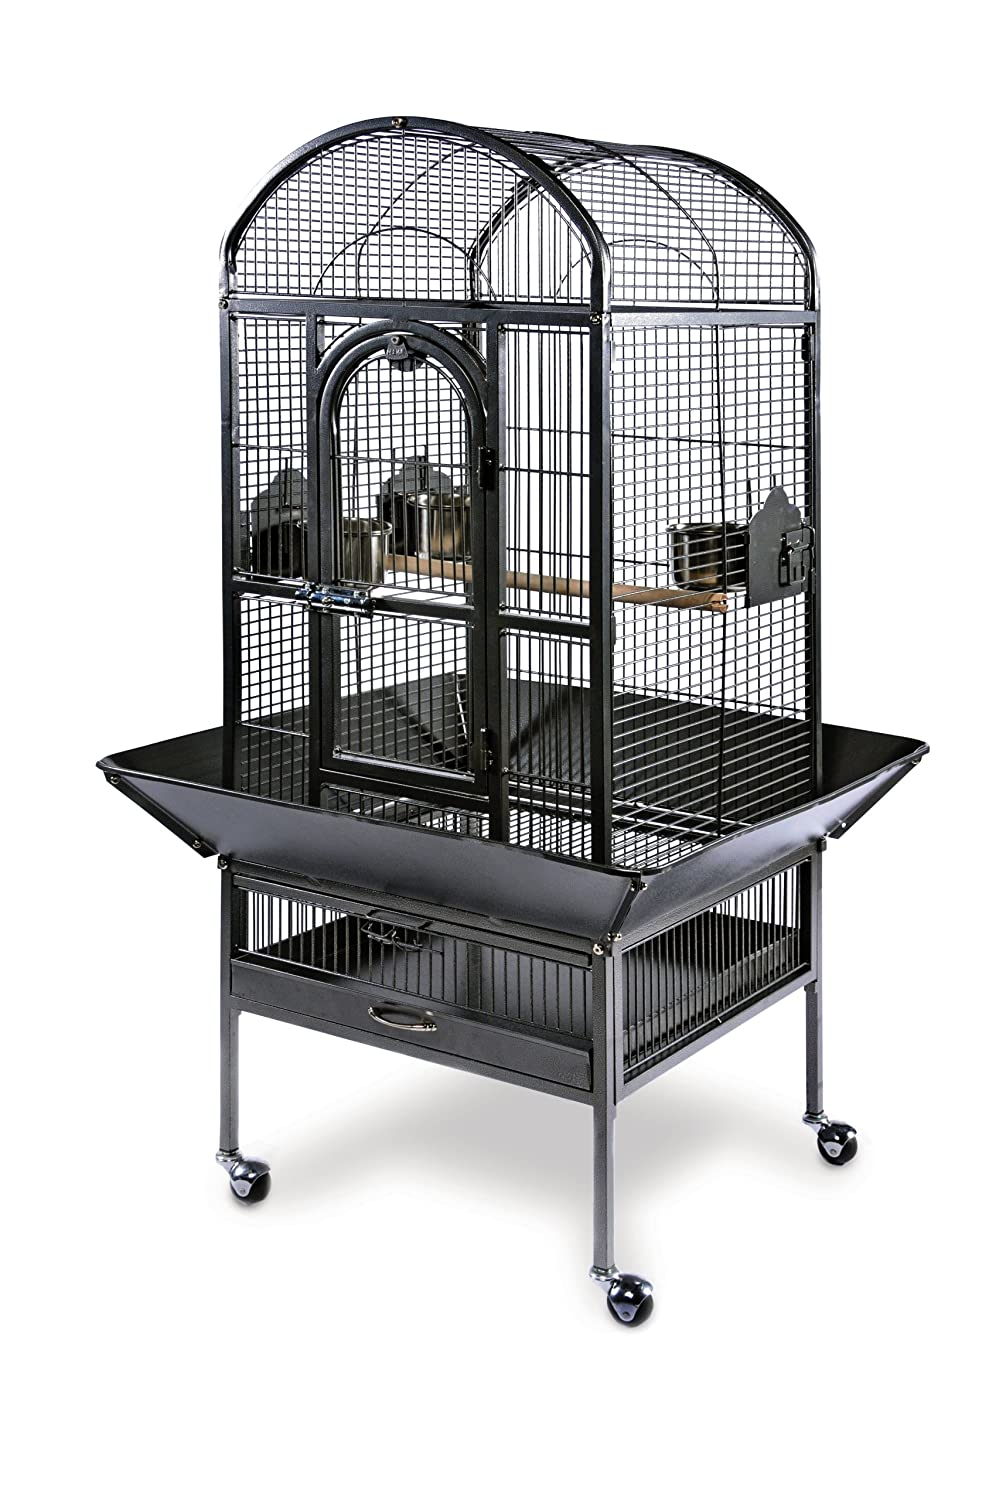 Black Hammertone Prevue Pet Products Small Dometop Bird Cage, Black Hammertone